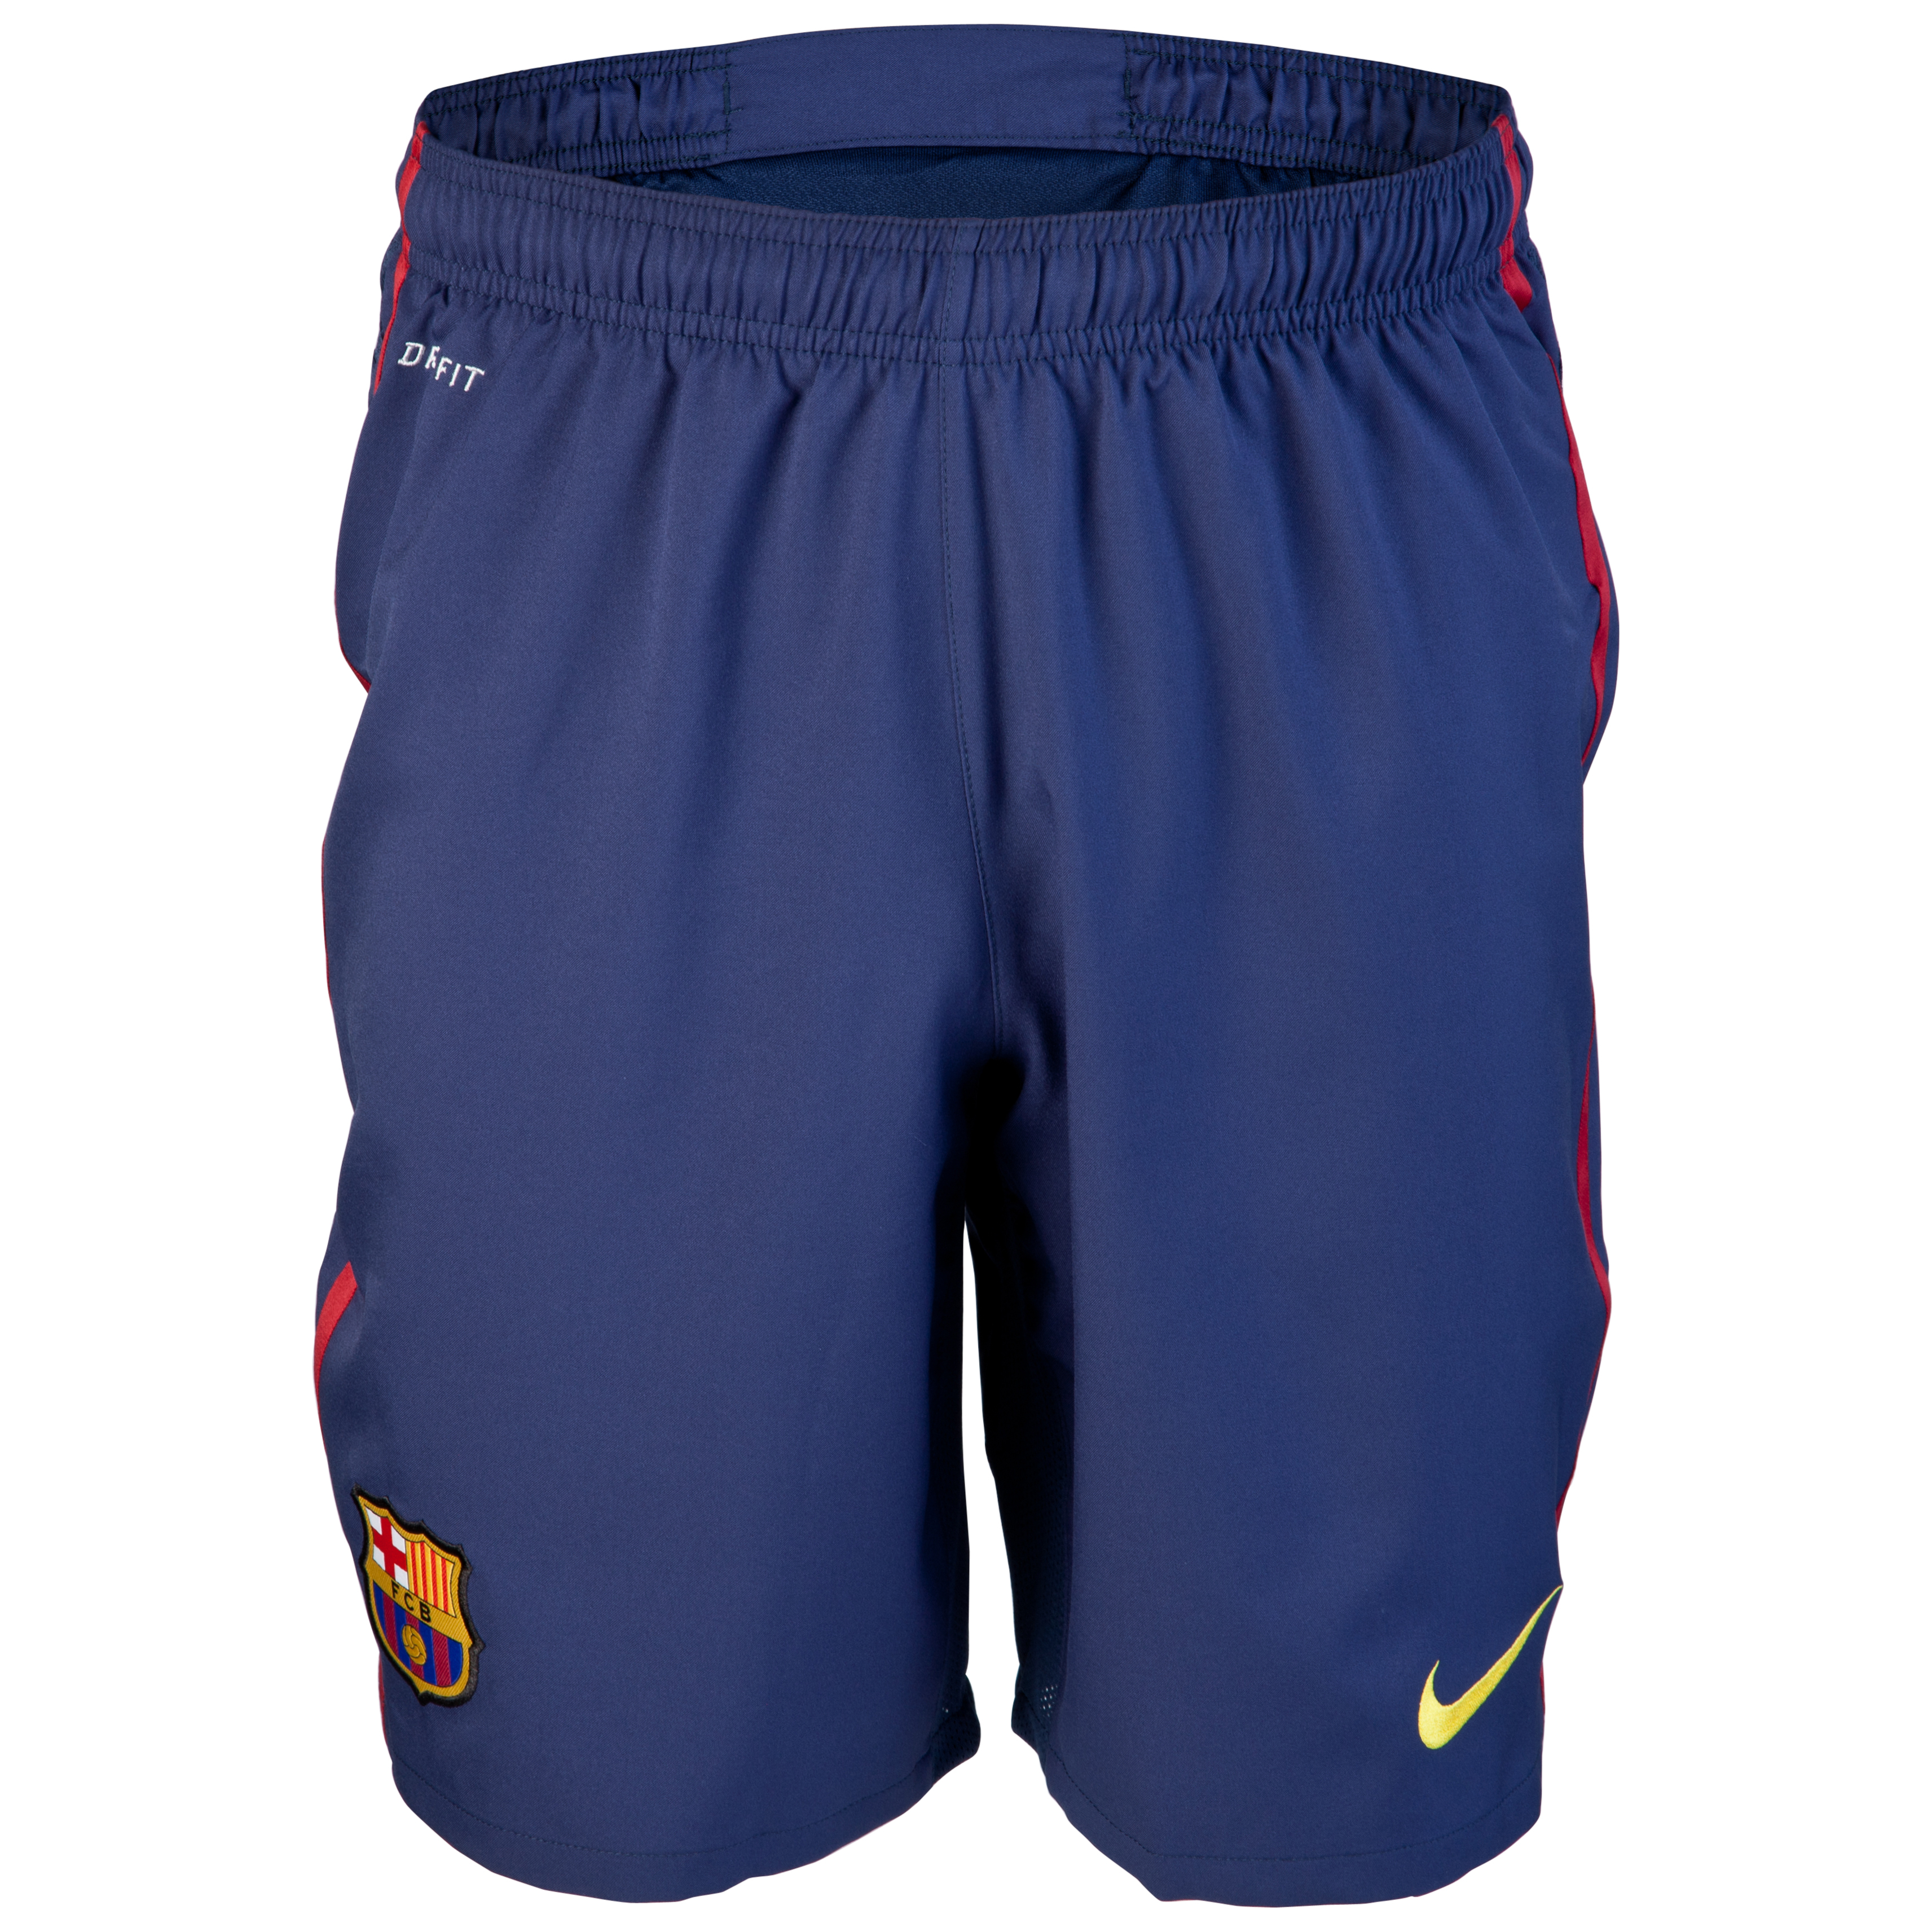 Barcelona Home Short 2012/13 - Kids